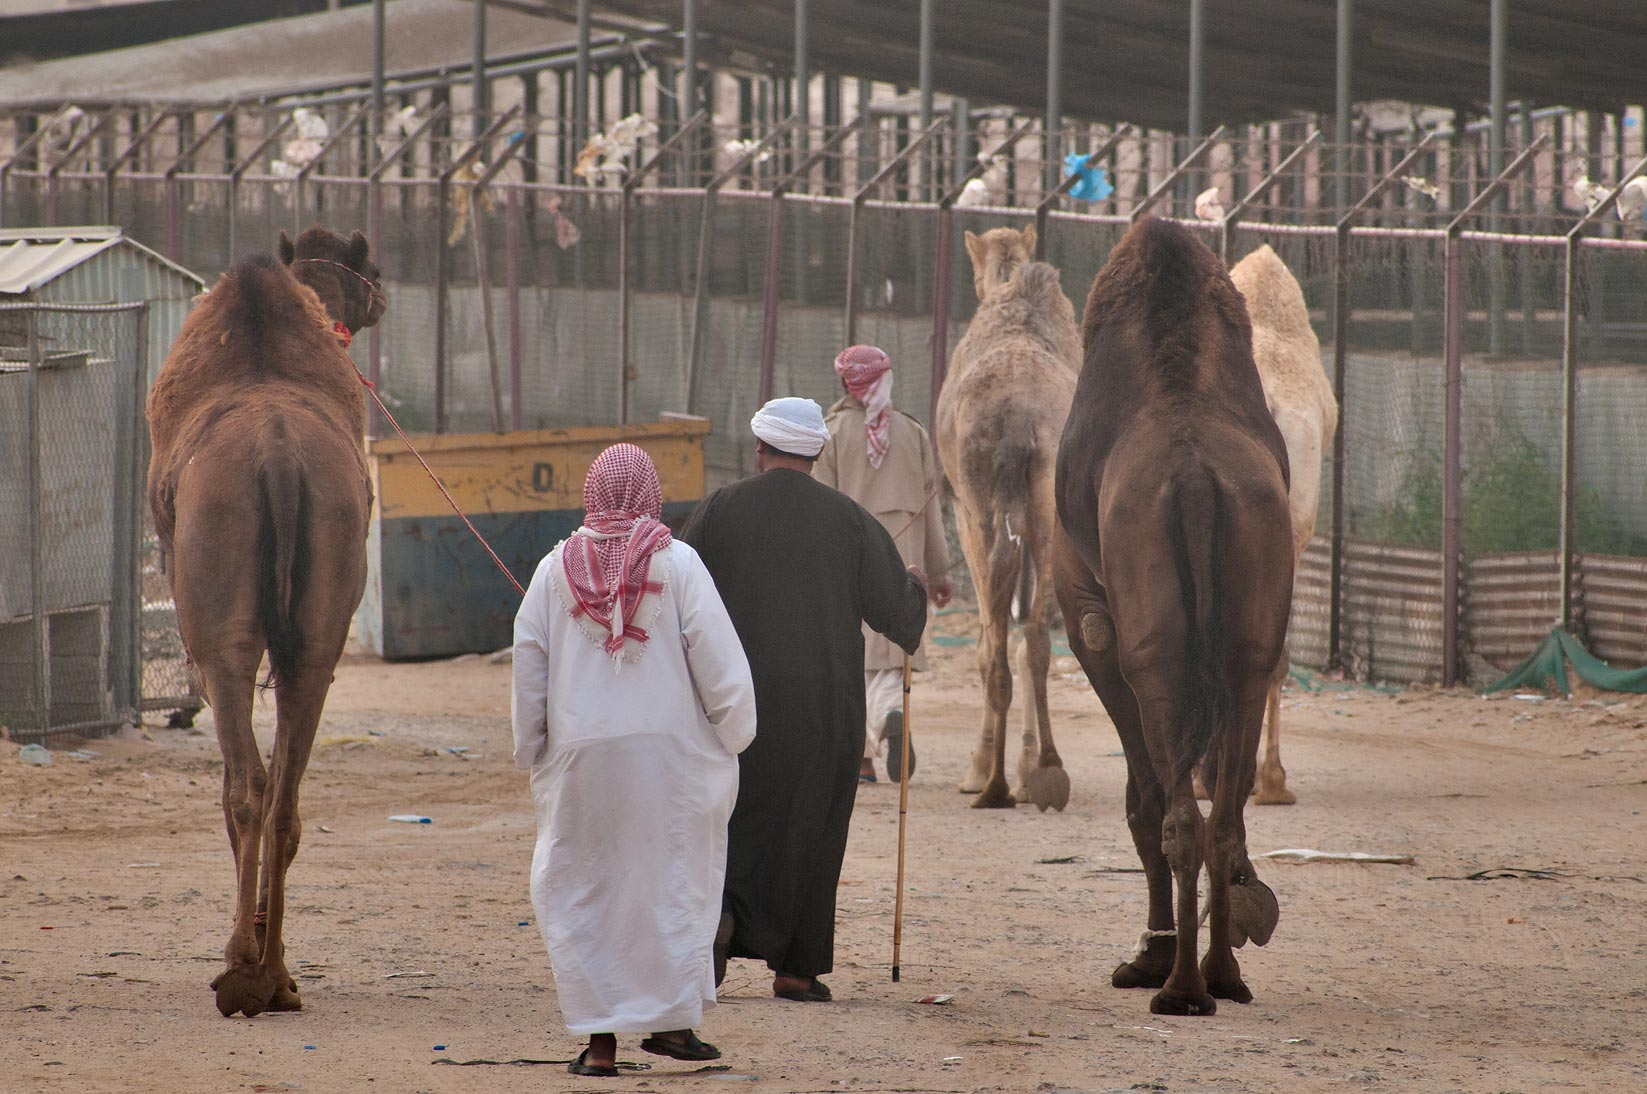 Several camels led by persons in Camel Market, wholesale markets area. Doha, Qatar